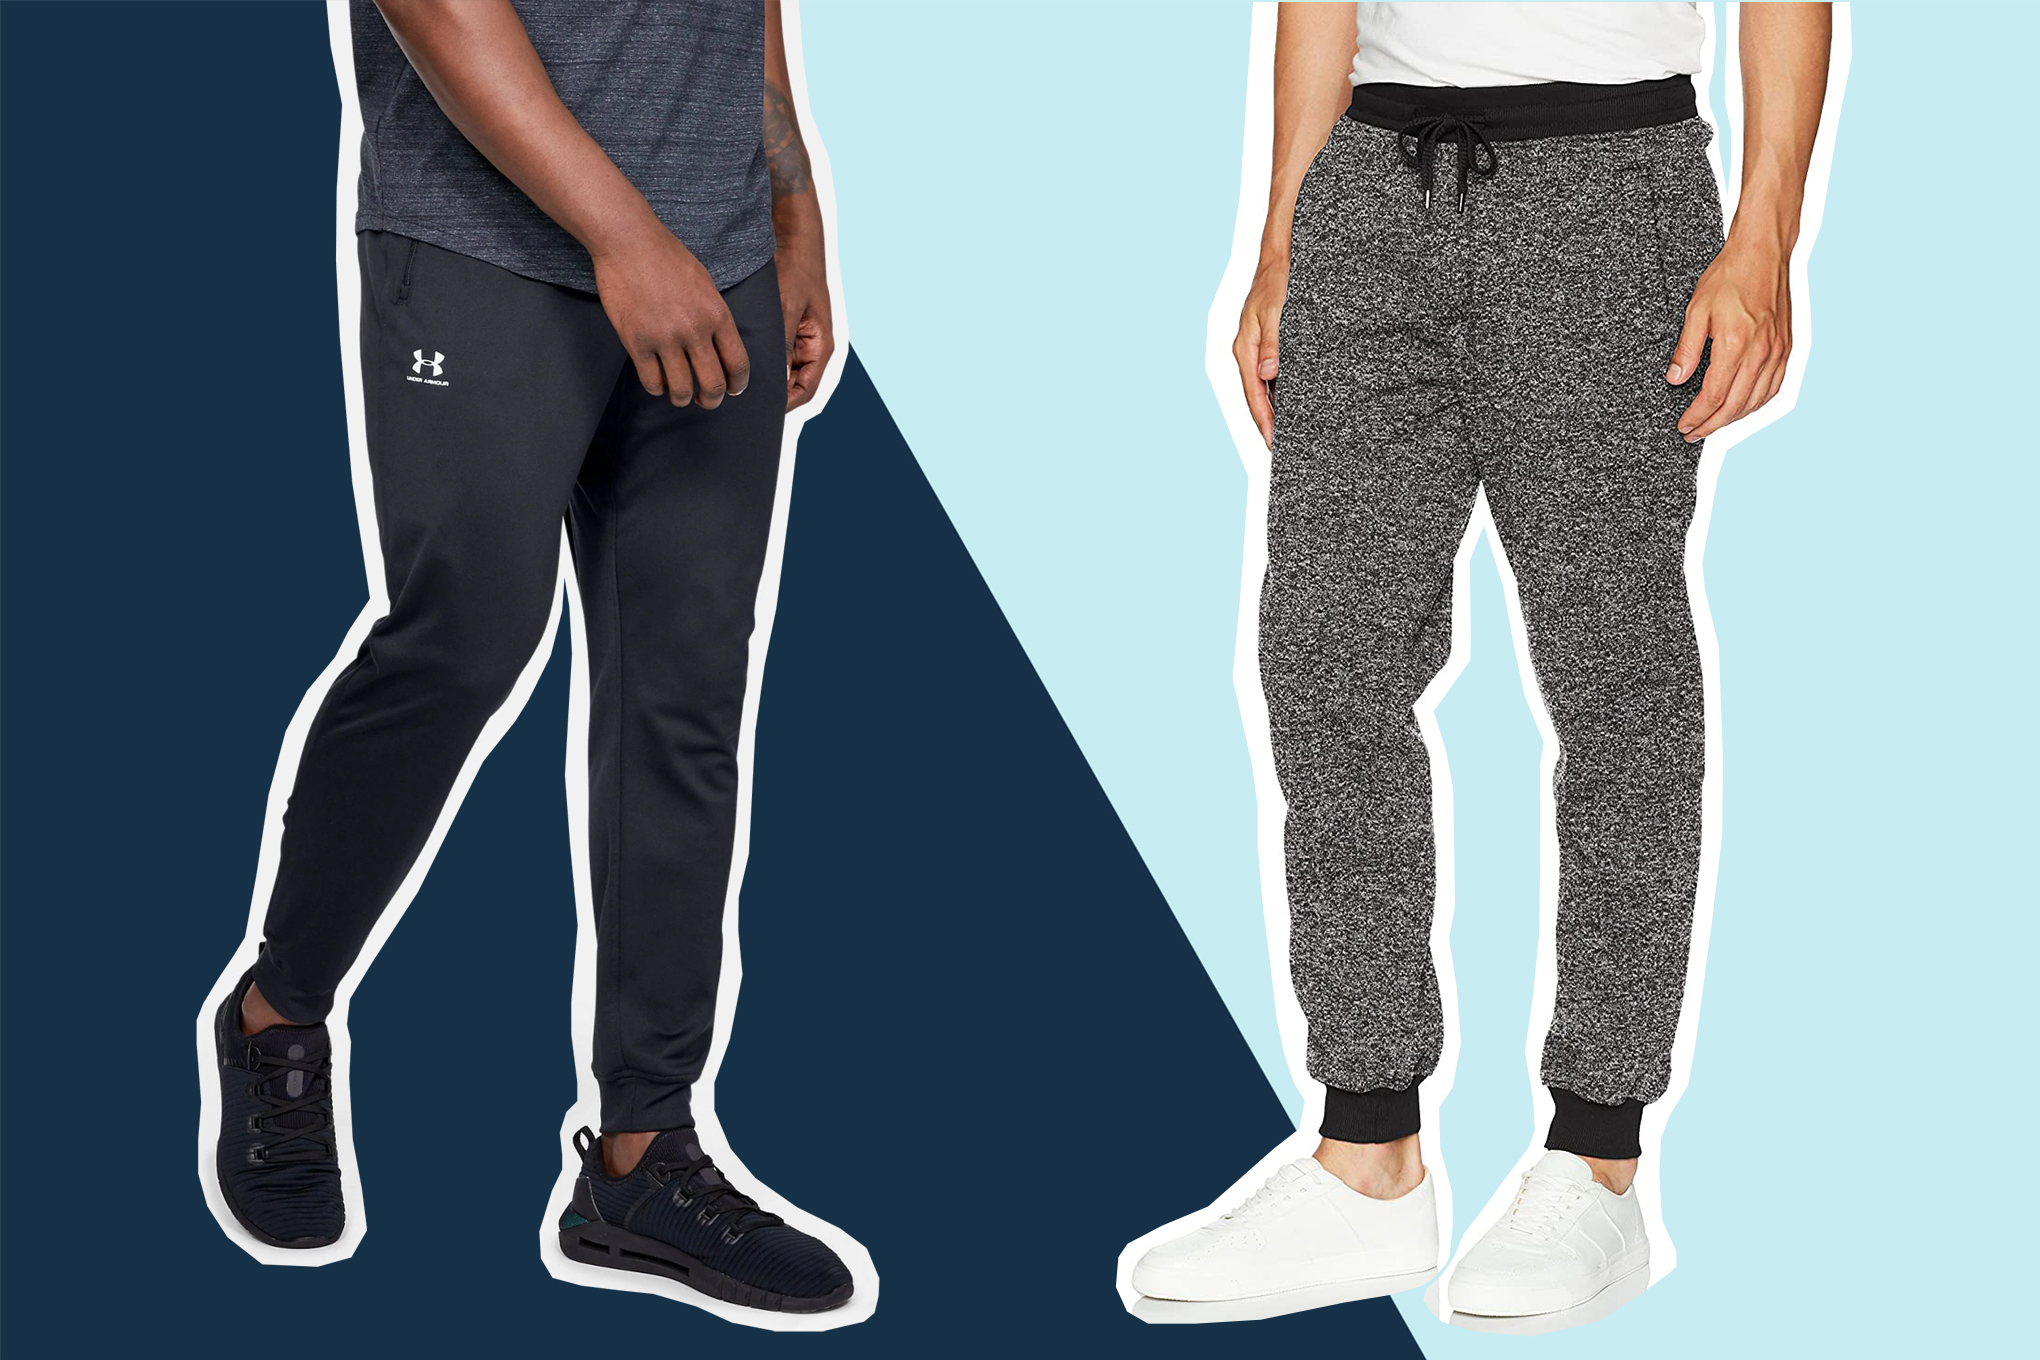 What You Need to Know About Sweatpants